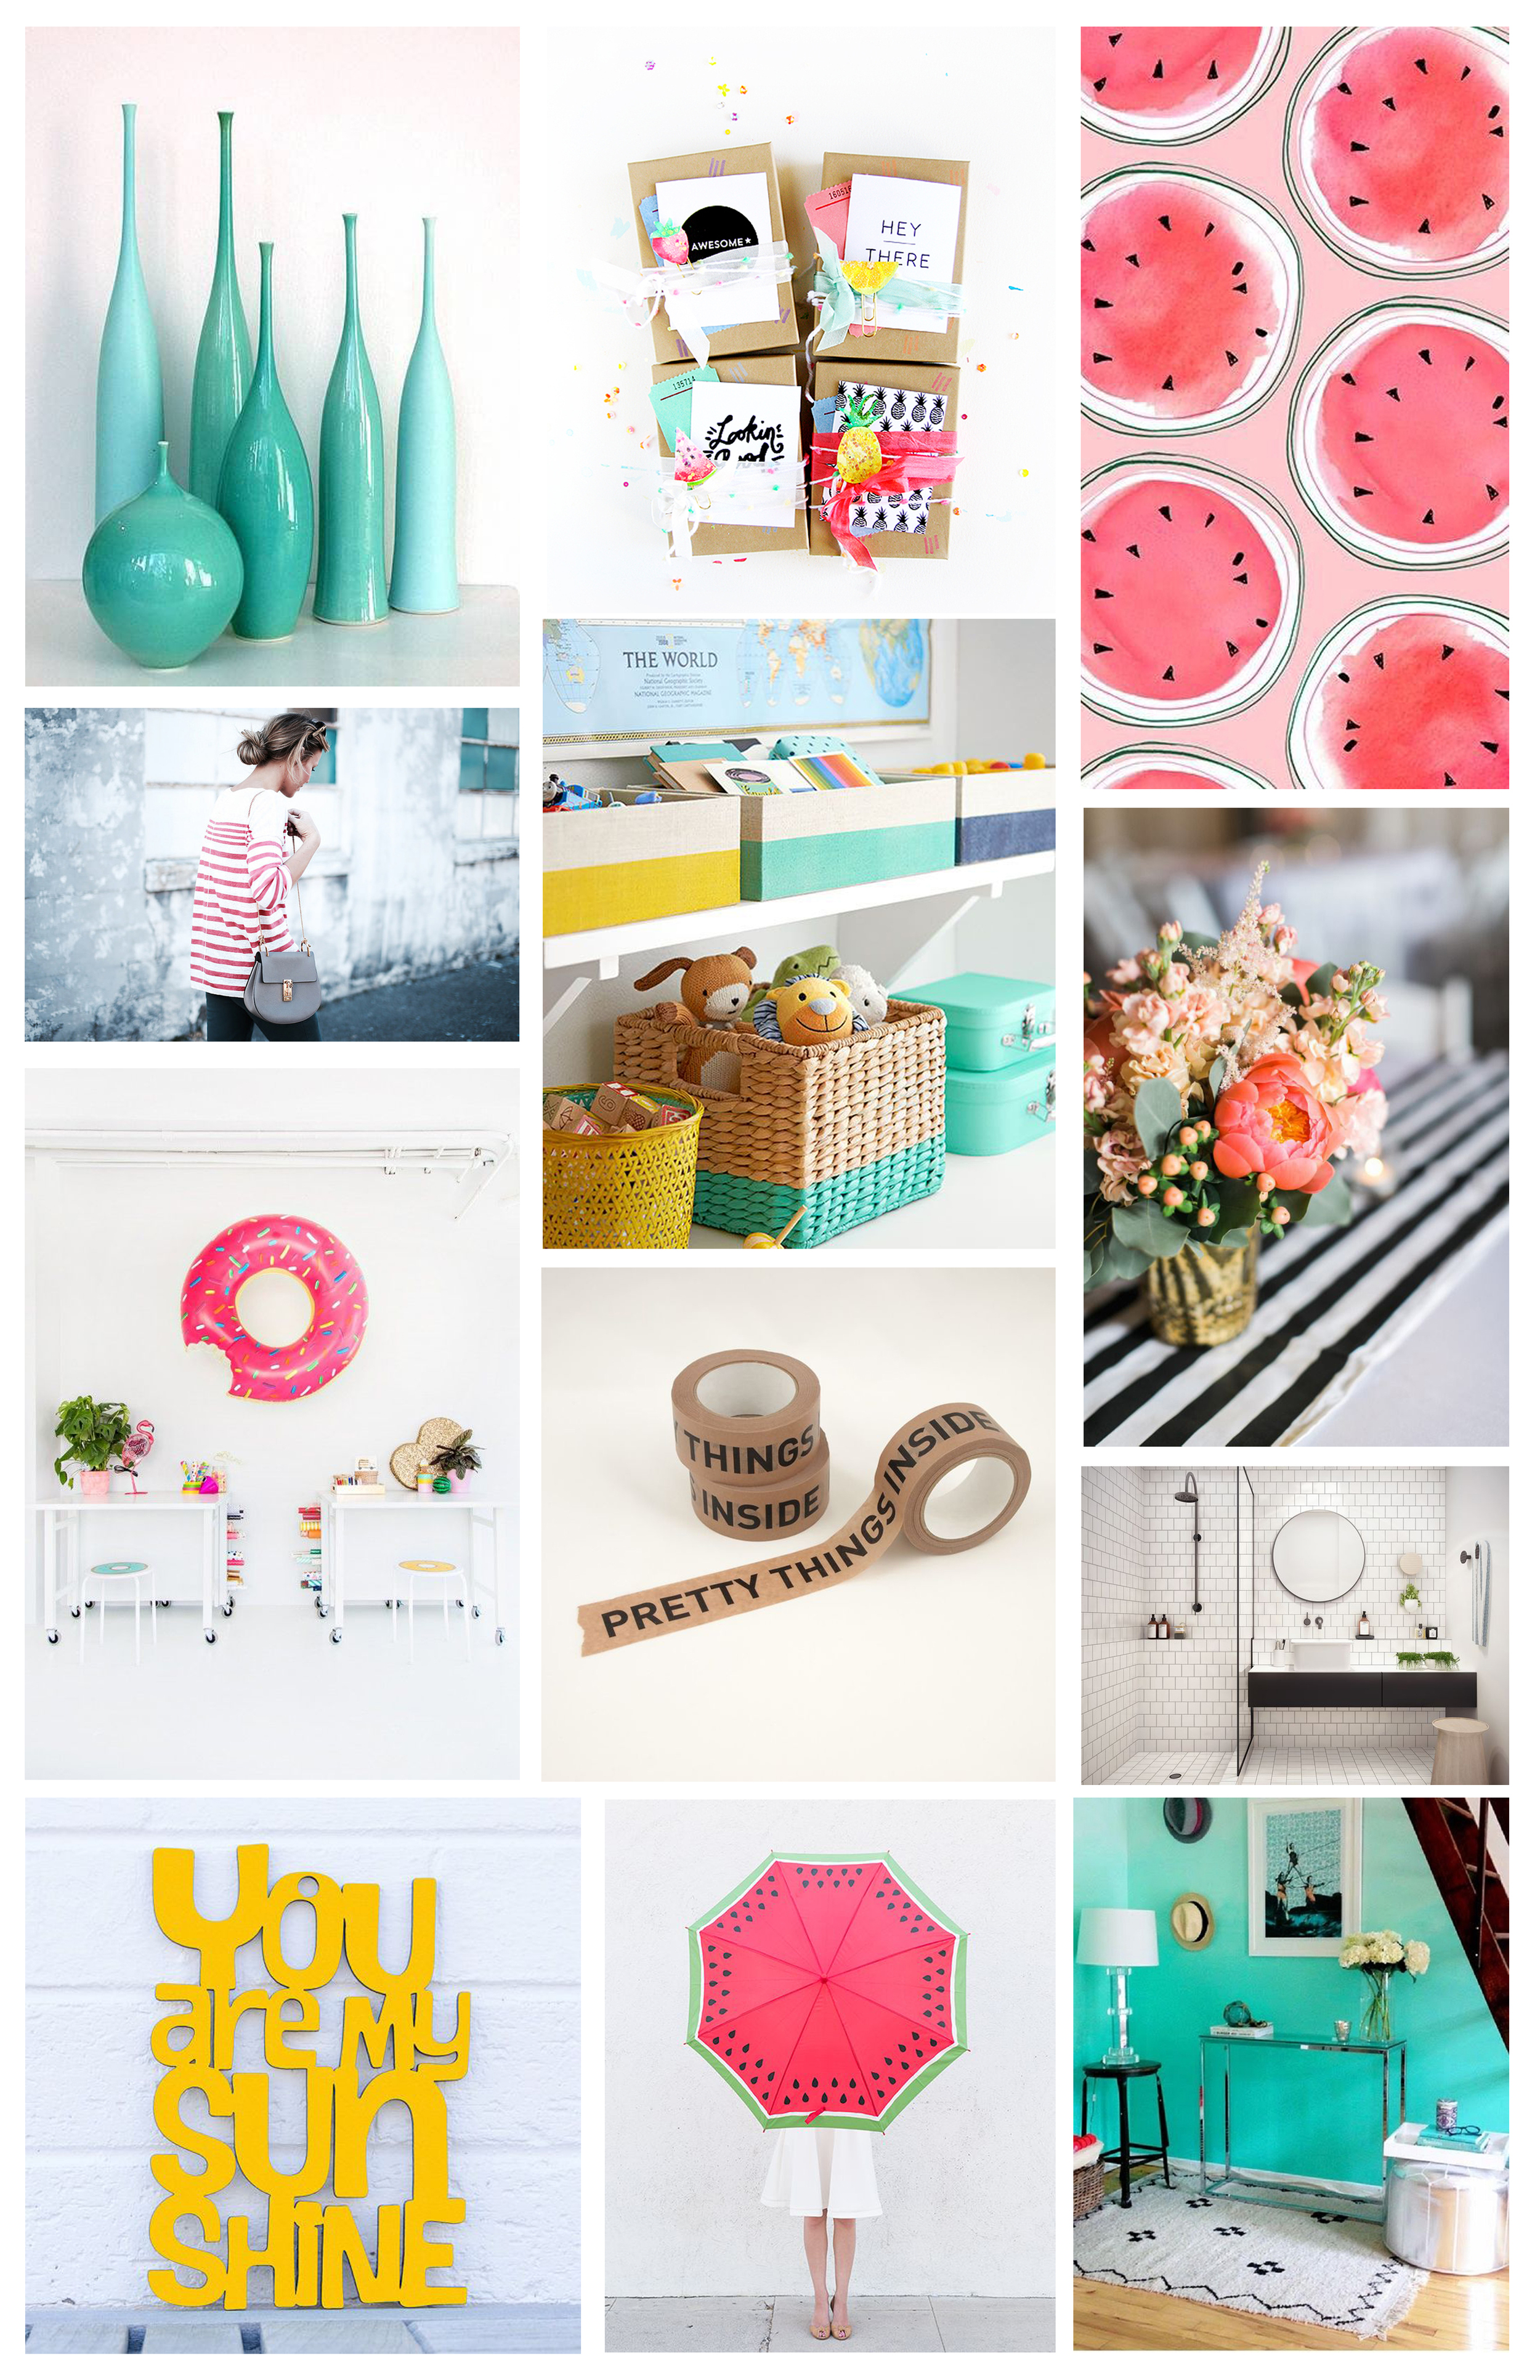 WEEKLY INSPIRATION WITH MONDAY MOOD BOARD 32 | THE PAPER CURATOR